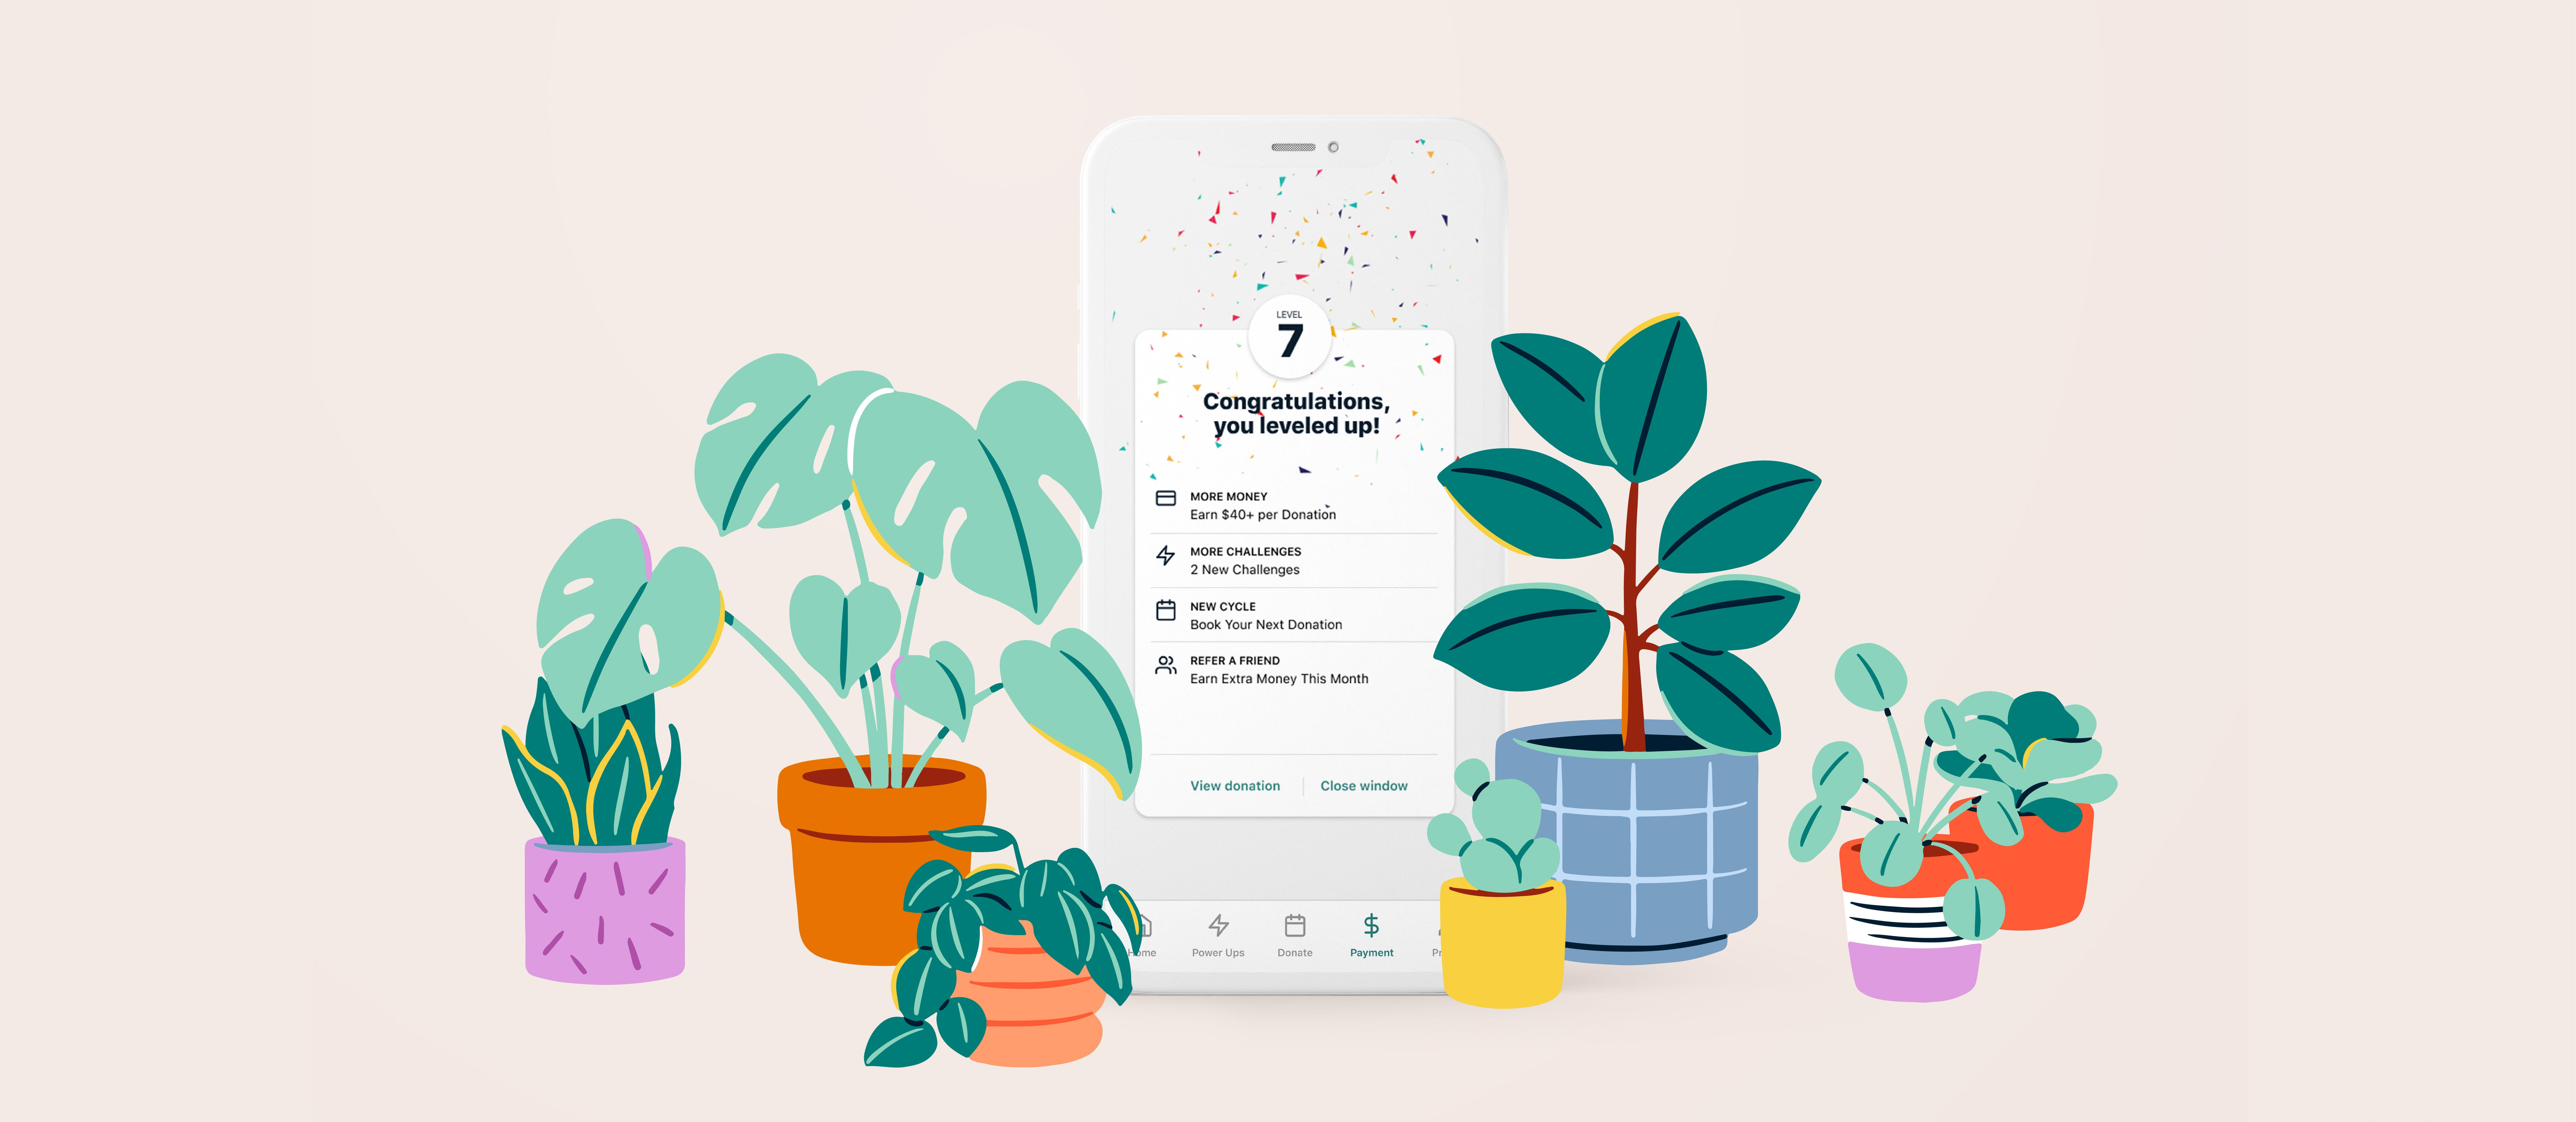 Image of smartphone showing the Parachute app surrounding by illustrations of potted plants.